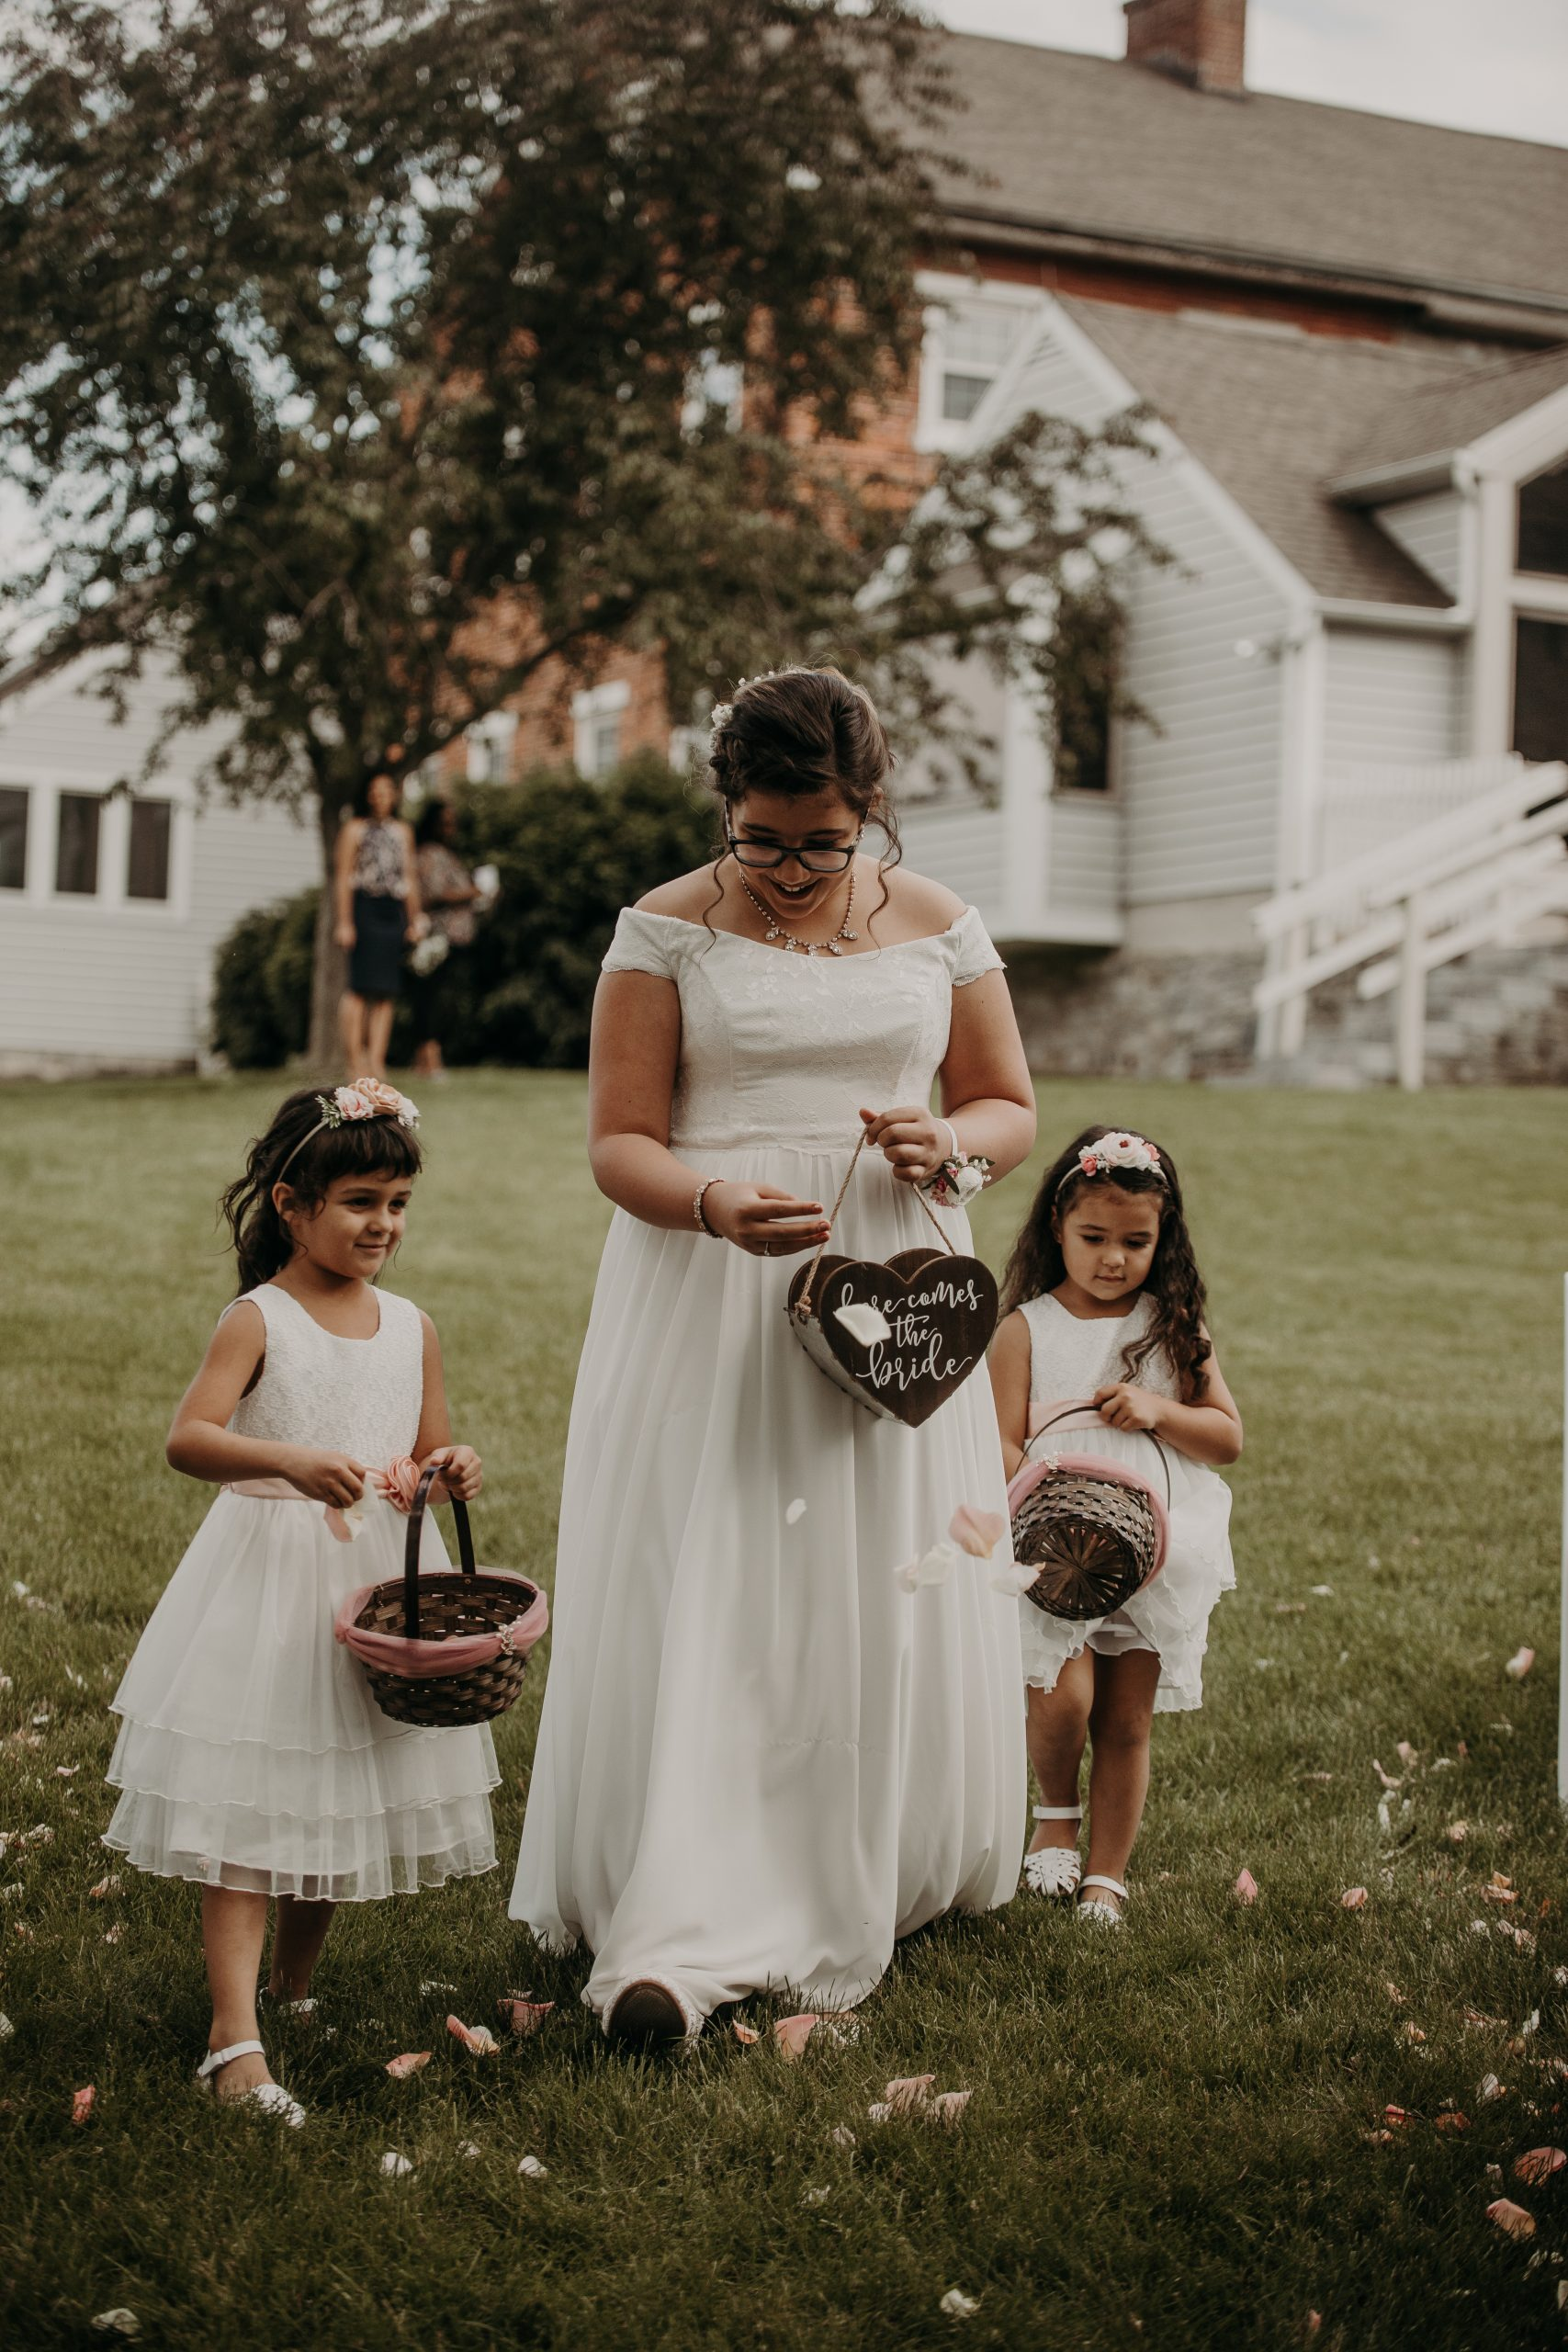 the flower girls kickstart the ceremony with petals thrown all about the green grass. Christine and Richard wed on the Chestnut Hill Villa grounds on May of 2019. This organic ethereal styled wedding was captured by Garnet Dahlia Photography and featured on Dream Weddings.